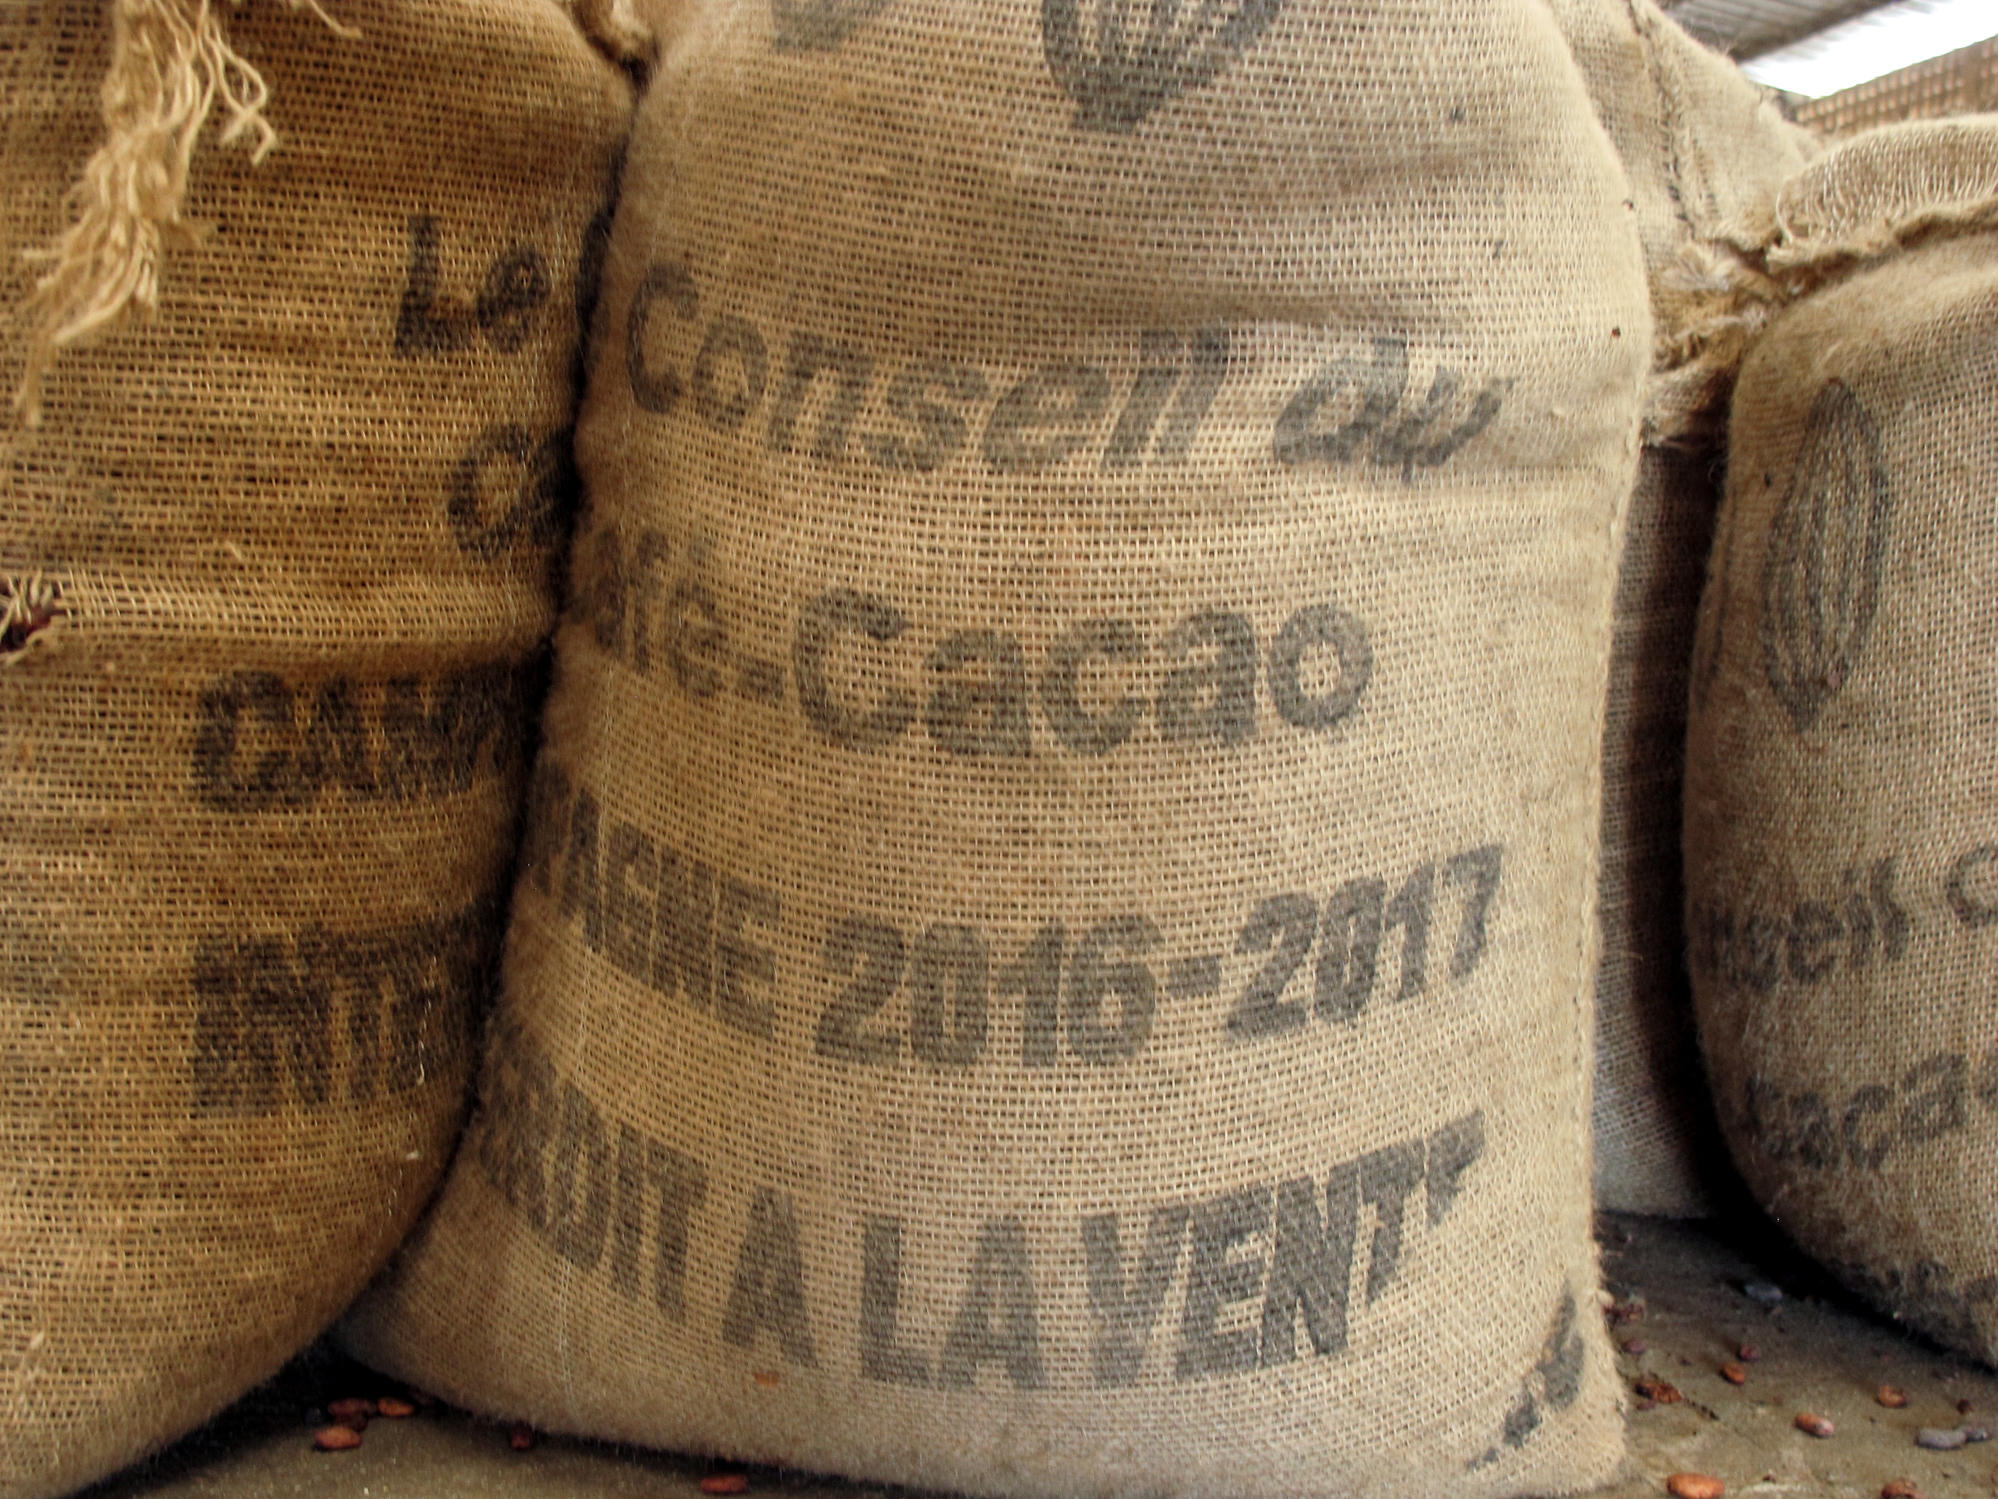 cocoa crisis in ivory coast The coffee crisis in ivory coast looks set to be resolved, two months after thousands of tonnes of coffee began blocking the country's main port the head of the coffee producers' union says the government has agreed to buy it all.